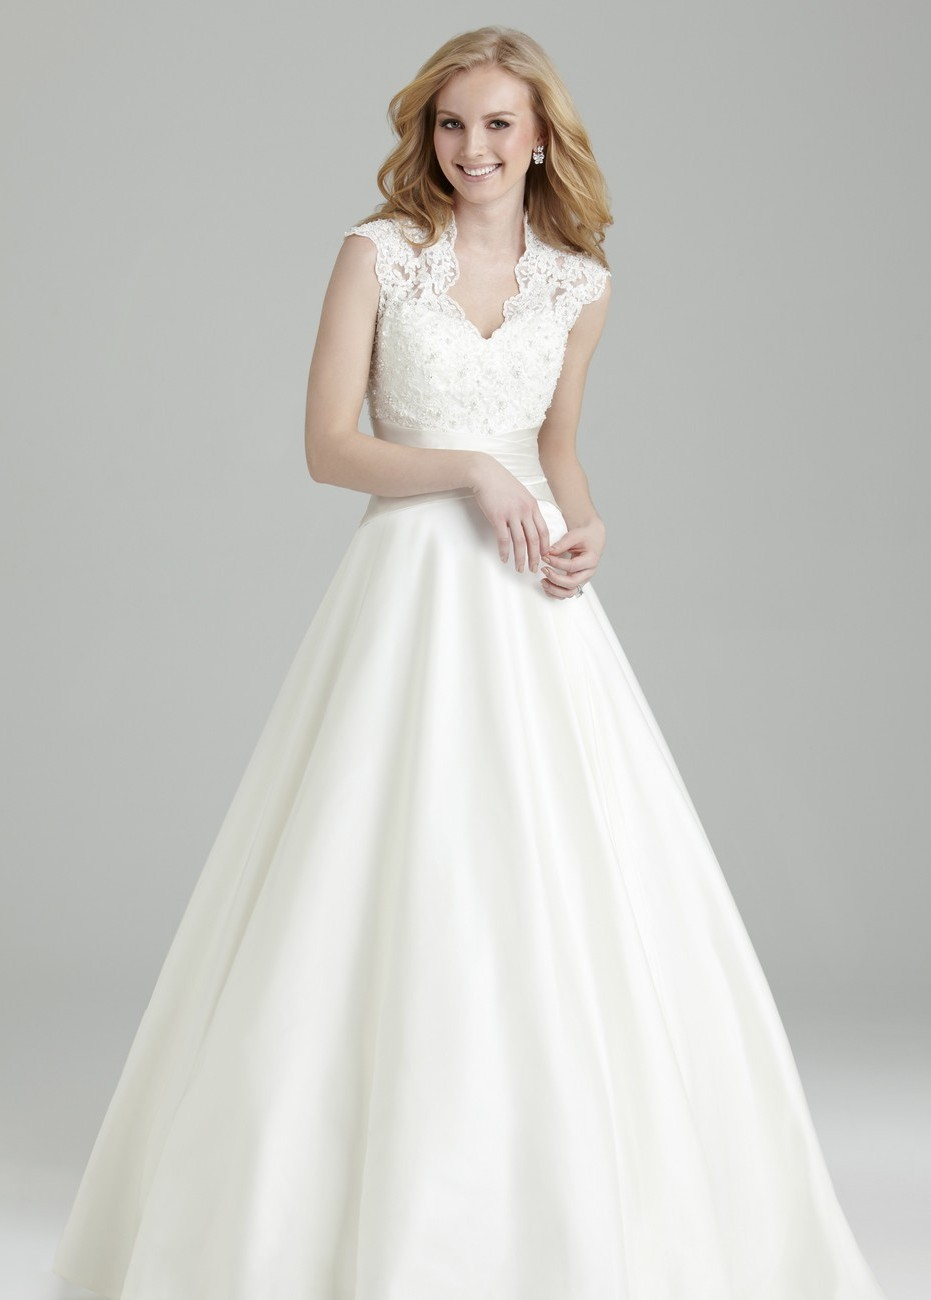 How To Sew Your Own Wedding Dress Discount Free Freight Sequins Elegant Patterns Make